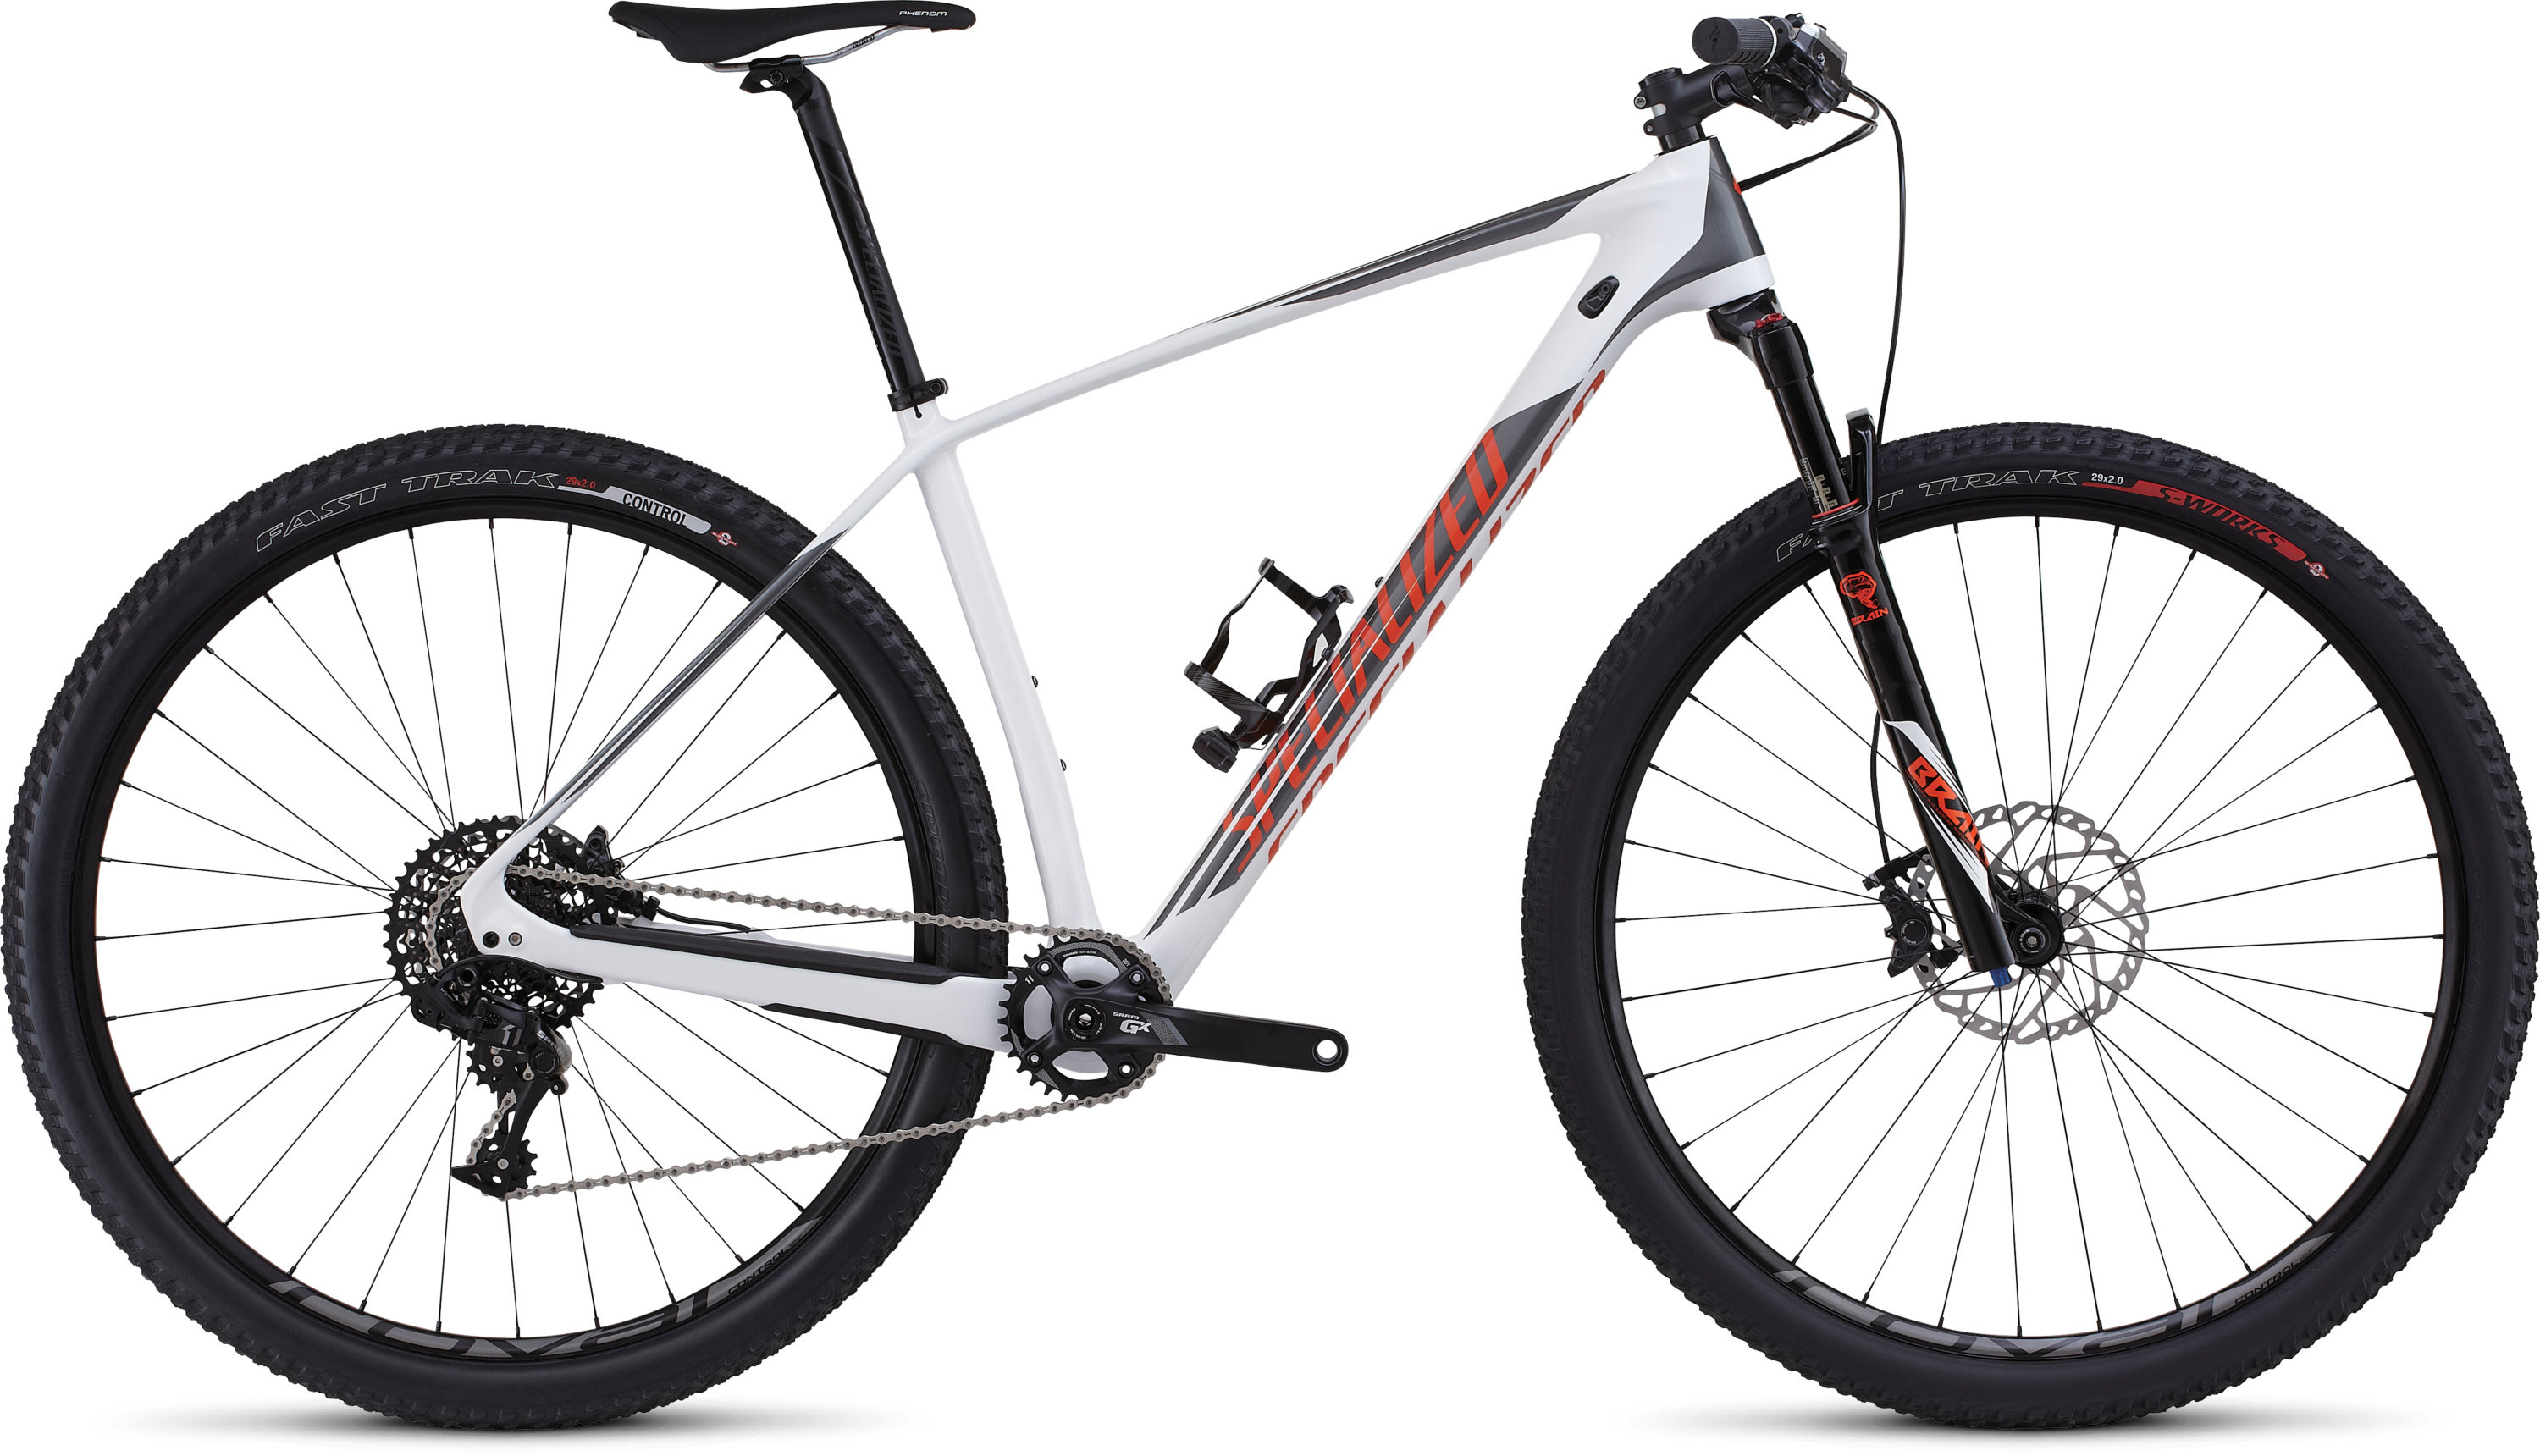 SPECIALIZED SJ HT ELITE CARBON WC 29 WHT/CHAR/MXORG M - Alpha Bikes